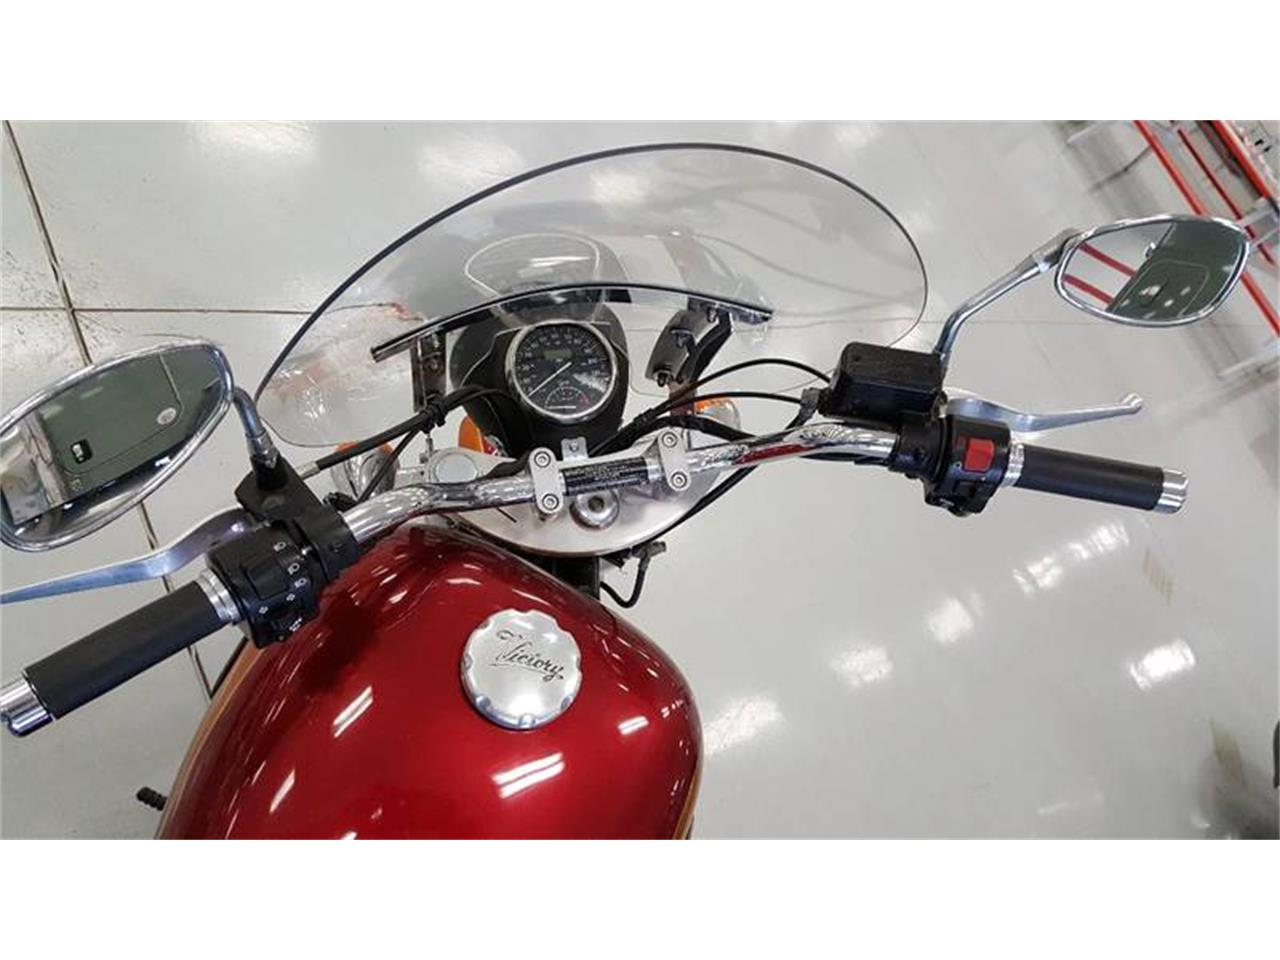 2000 Victory Motorcycle (CC-1010917) for sale in Effingham, Illinois